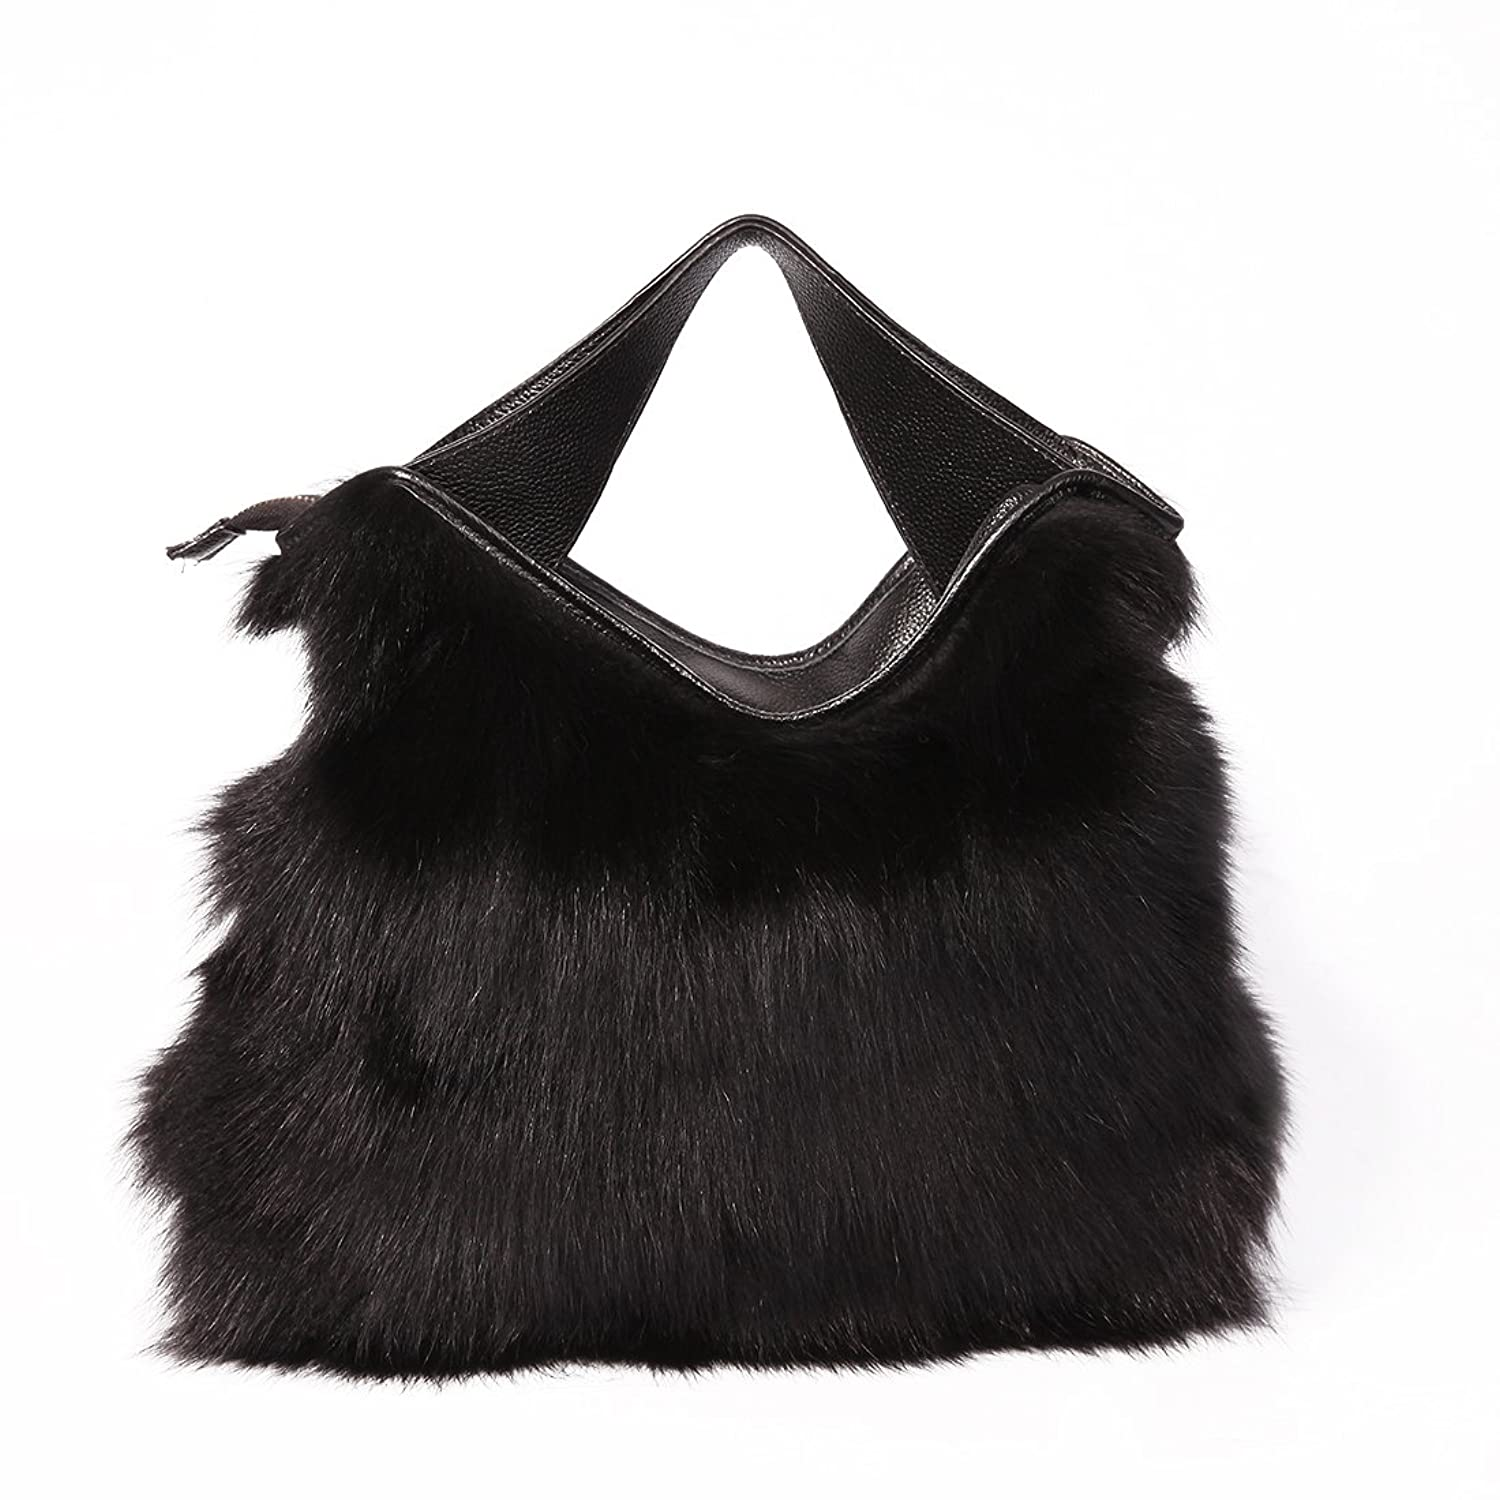 URSFUR Genuine Fox Fur Handbag Women's Fashion Tote Clutch Purse Shoulder Bags